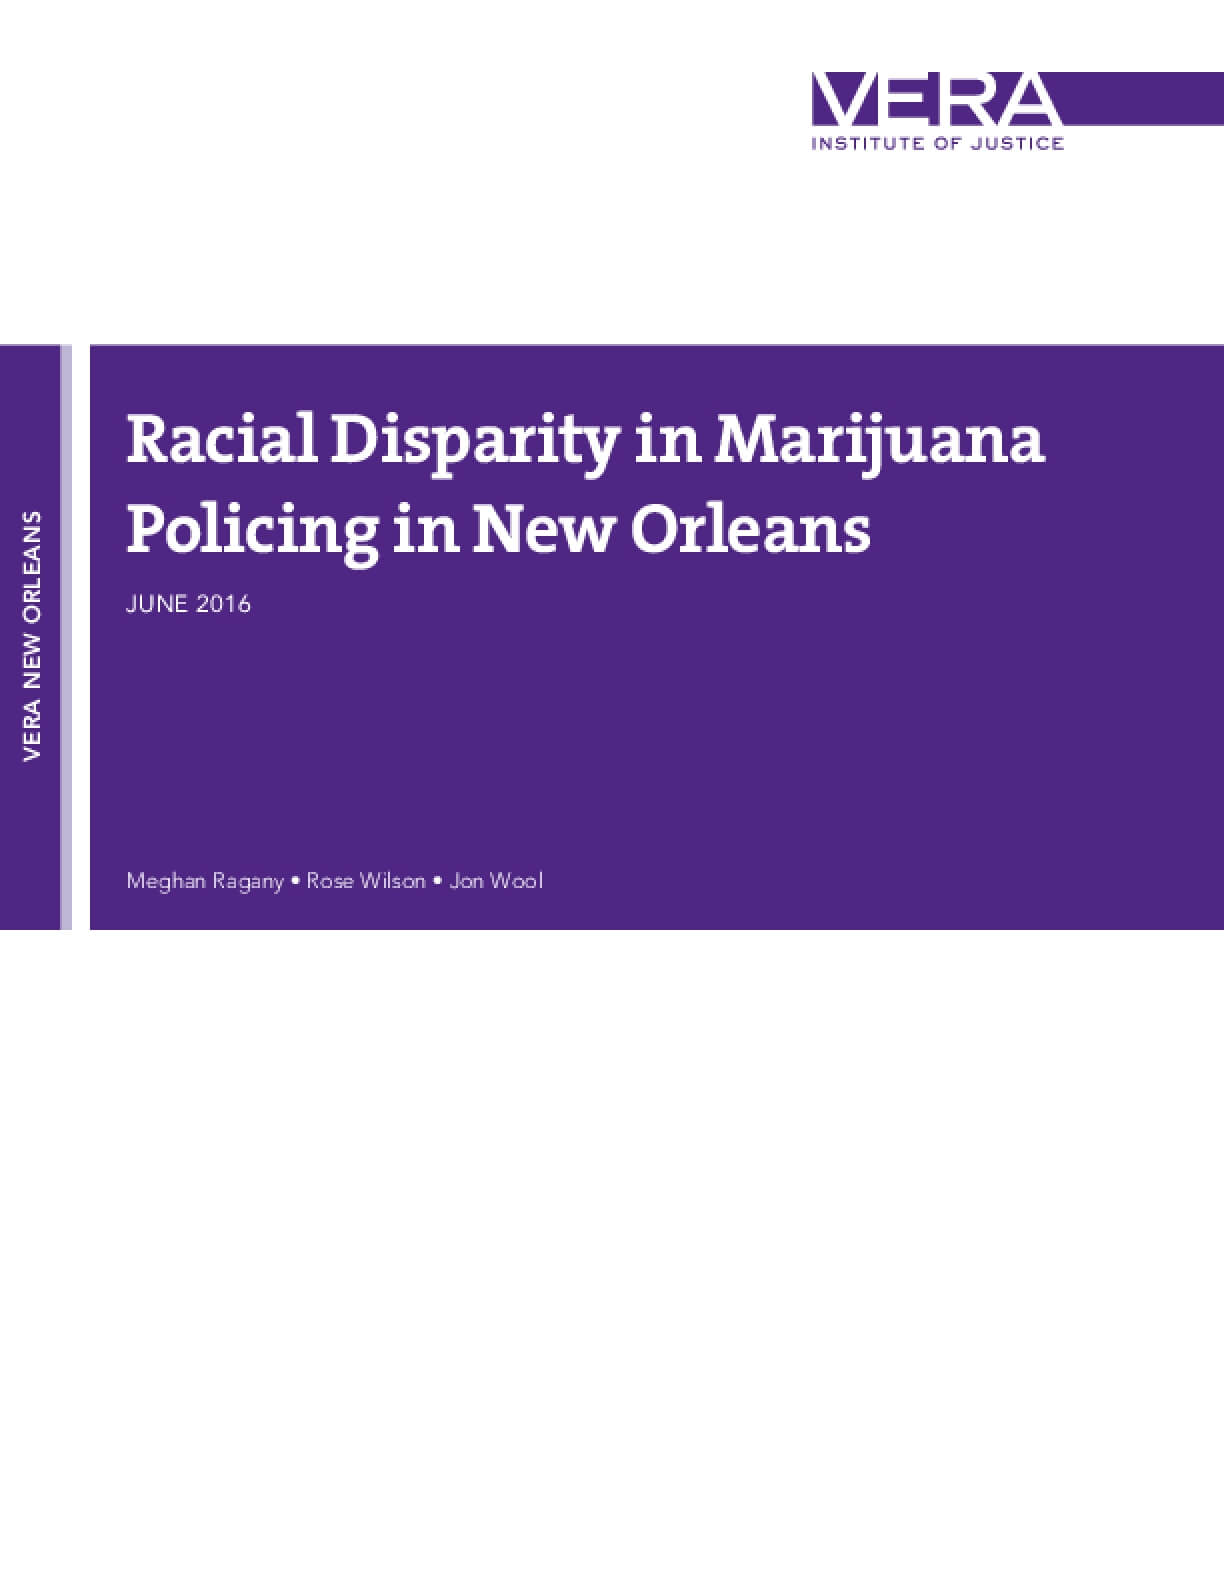 Racial Disparity in Marijuana Policing in New Orleans